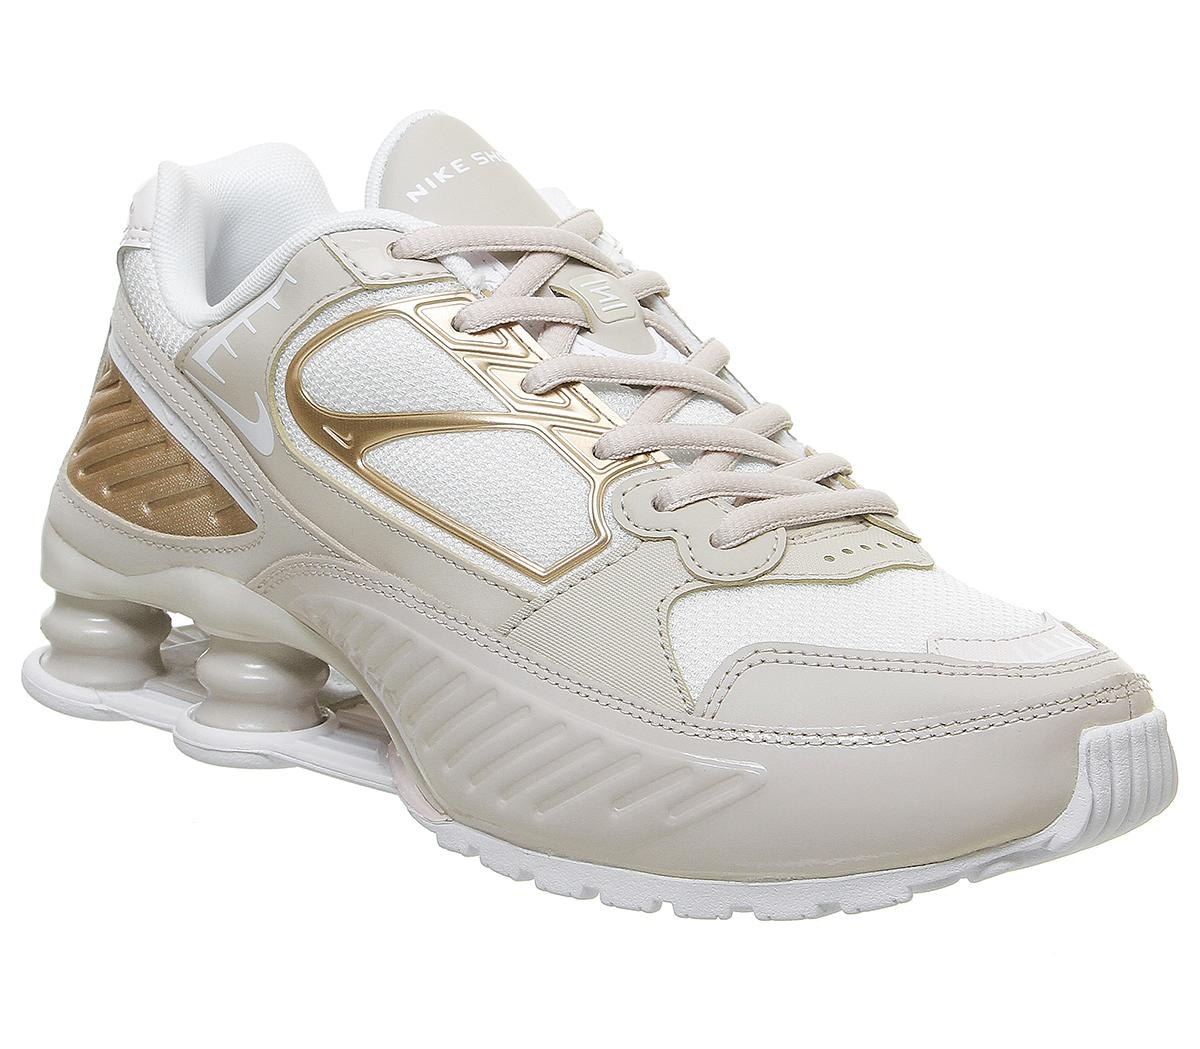 Shox Enigma Trainers